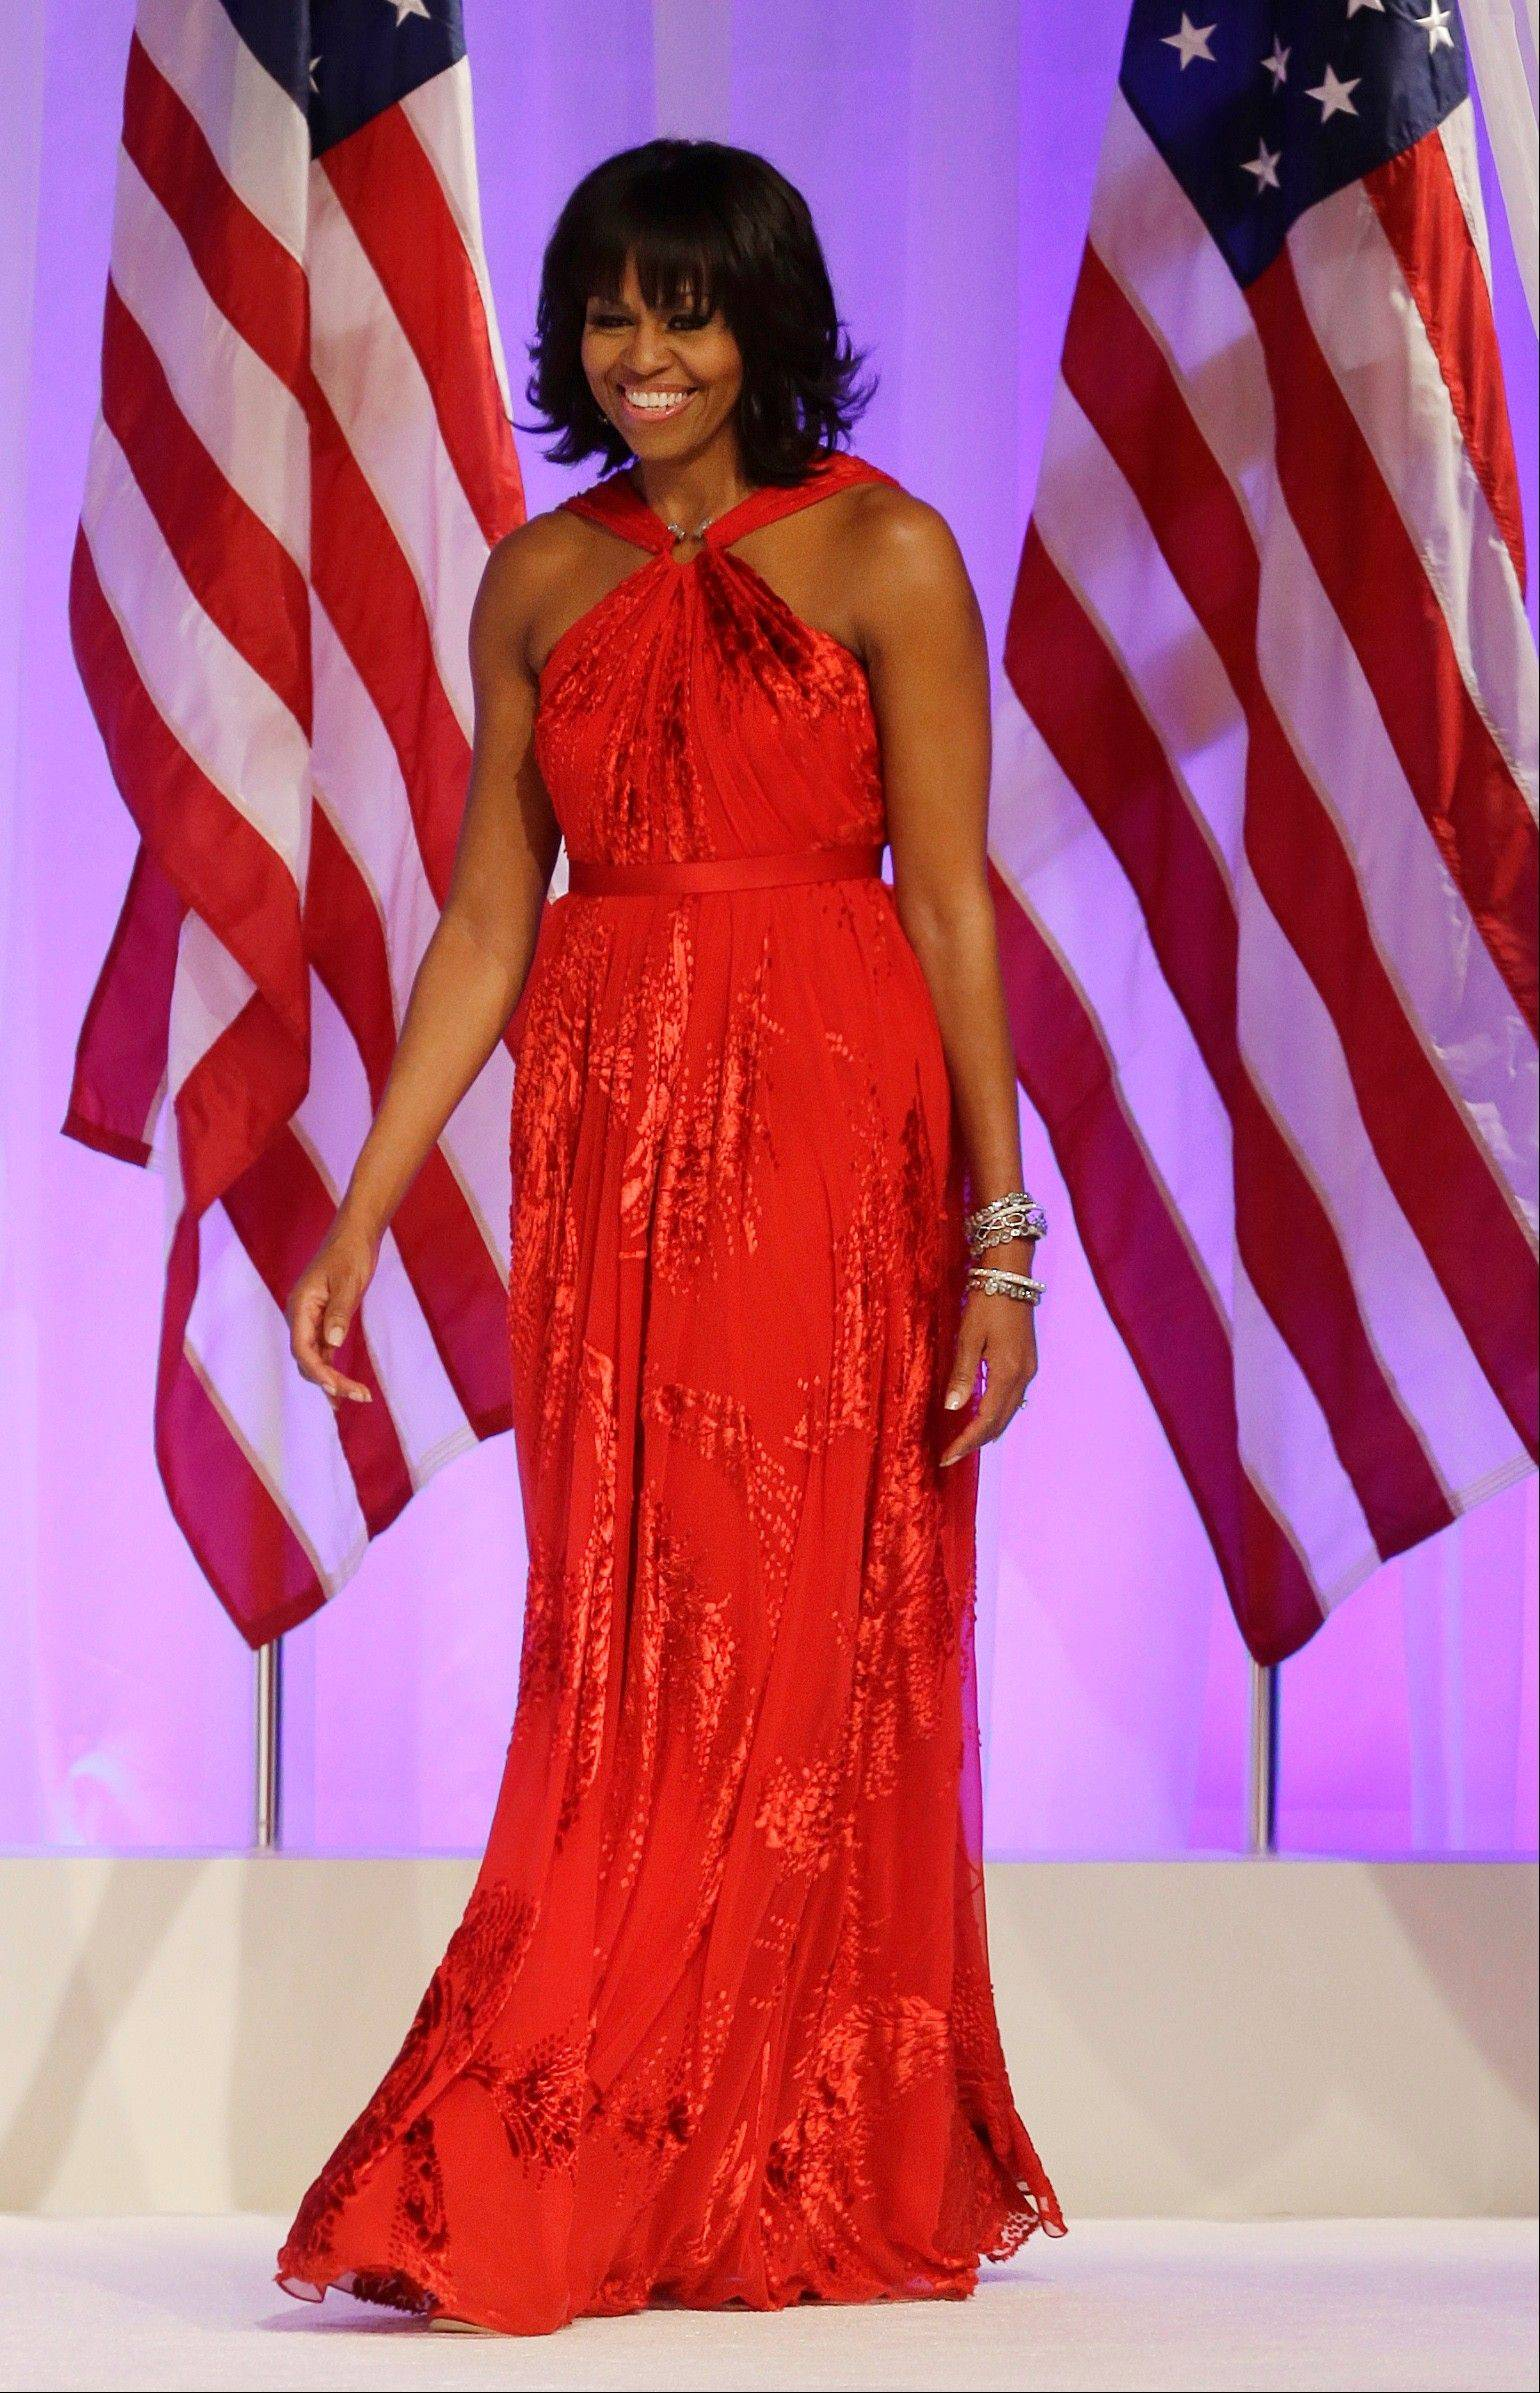 First lady Michelle Obama arrives at the Commander-in-Chief's Inaugural Ball at the 57th Presidential Inauguration in Washington on Monday evening.